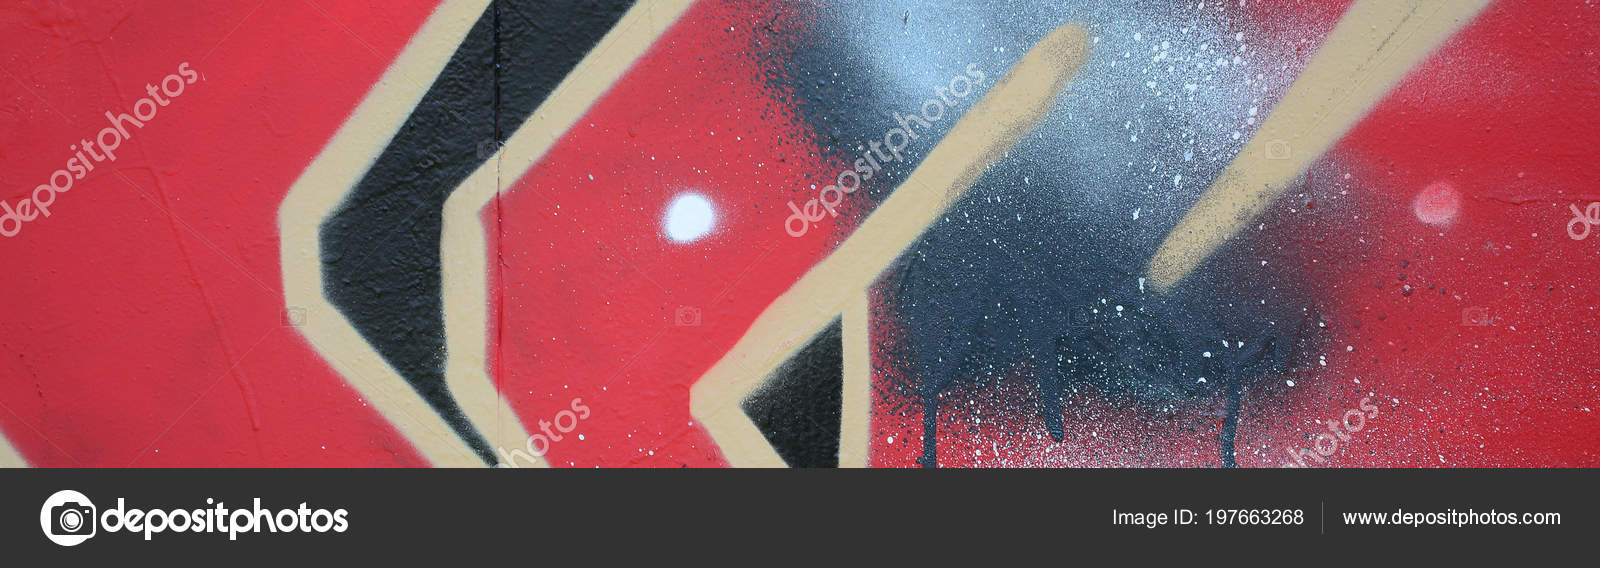 Street Art Abstract Background Image Fragment Colored